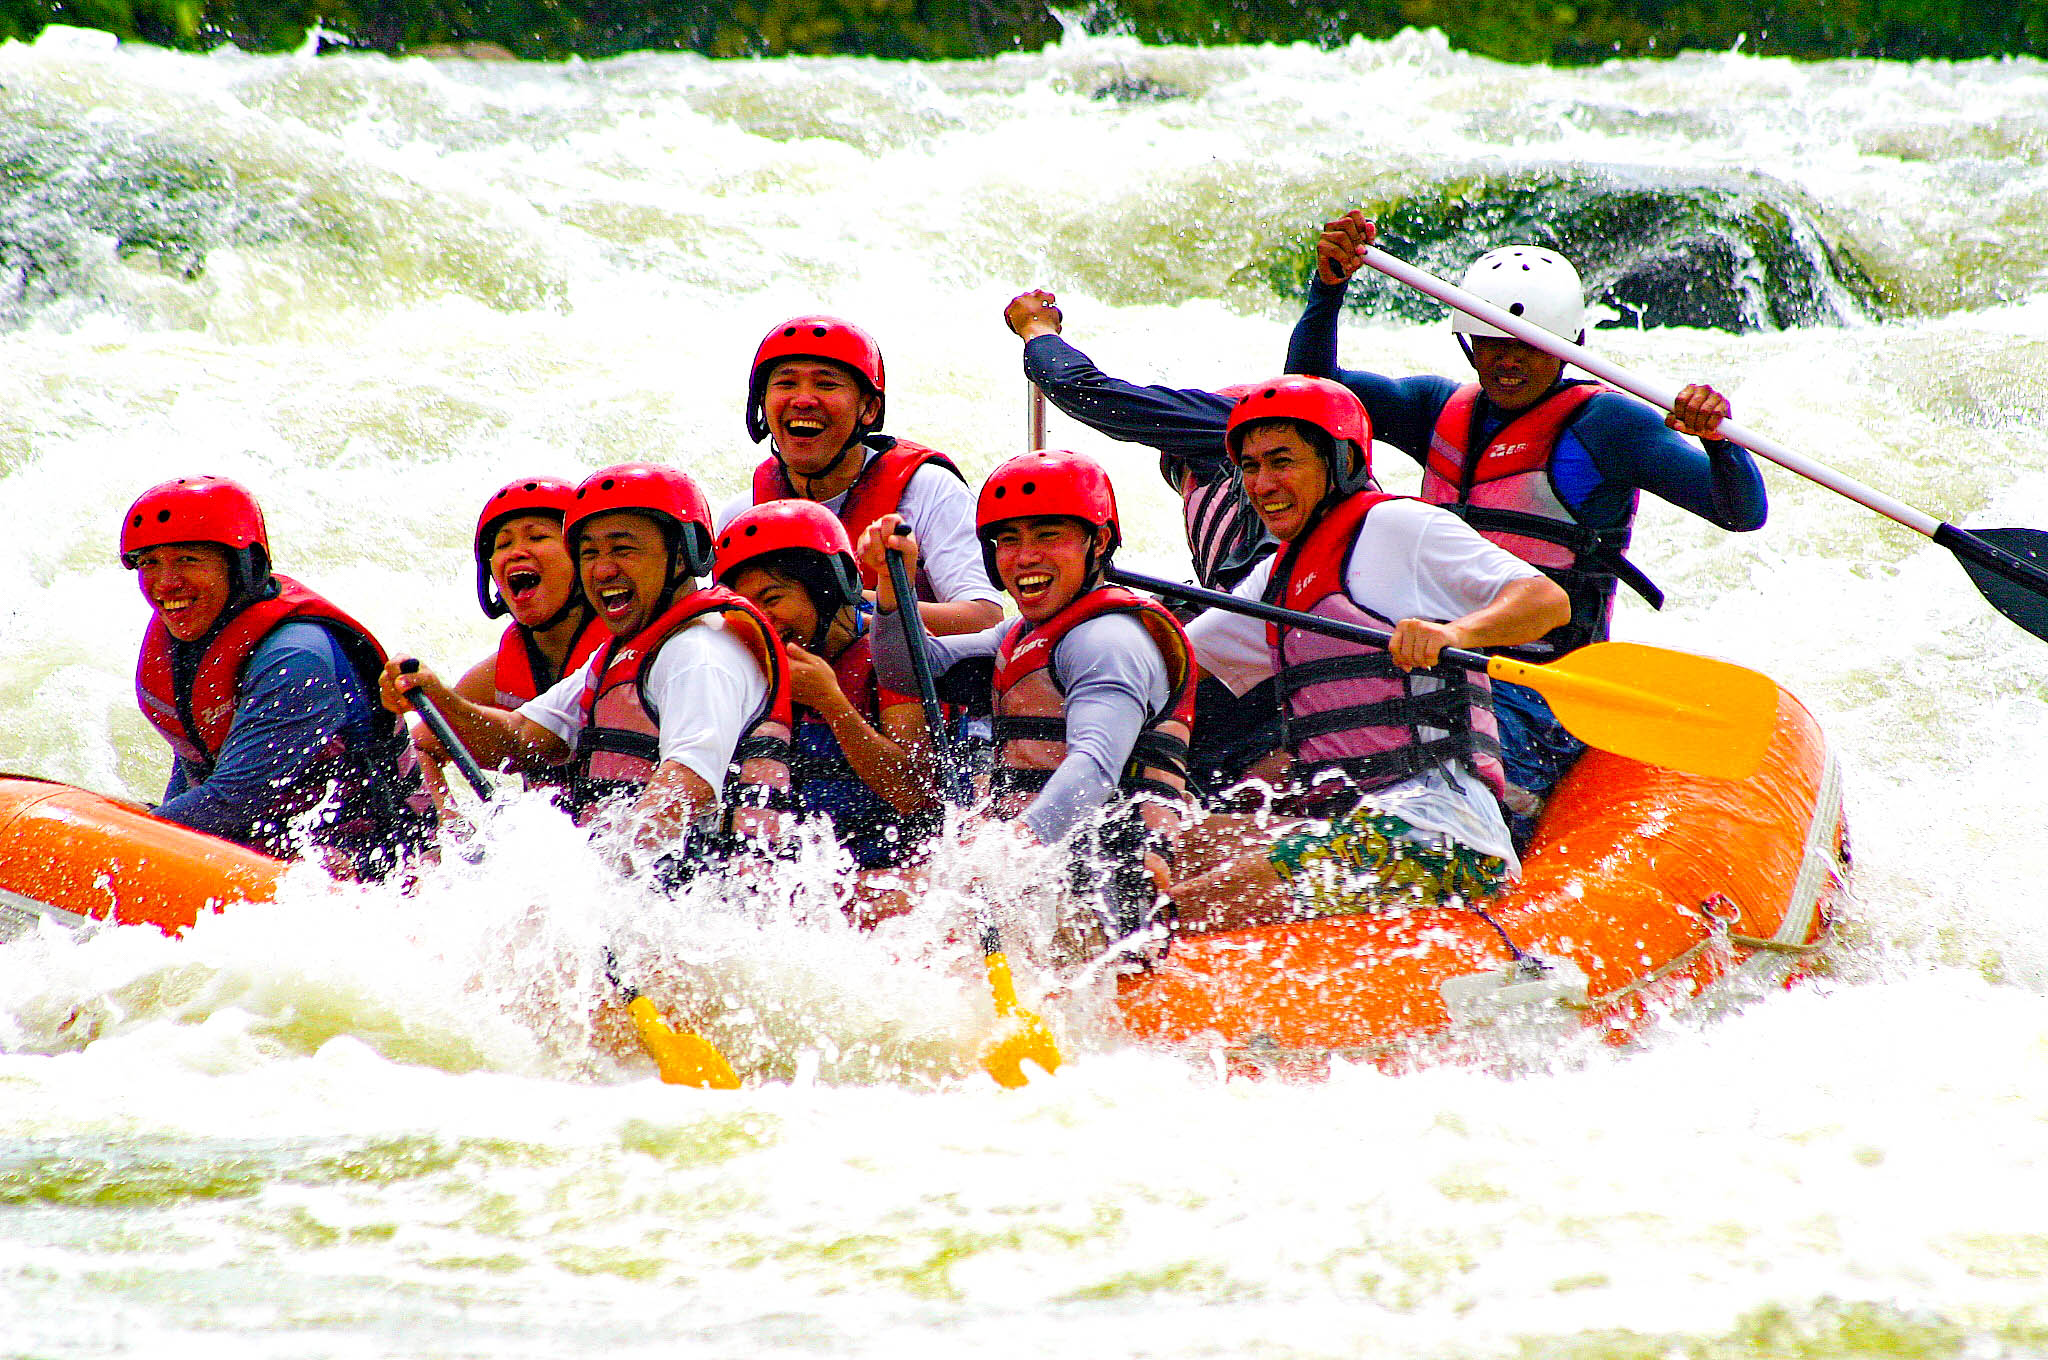 Group of people in a small boat whitewater rafting or kayaking